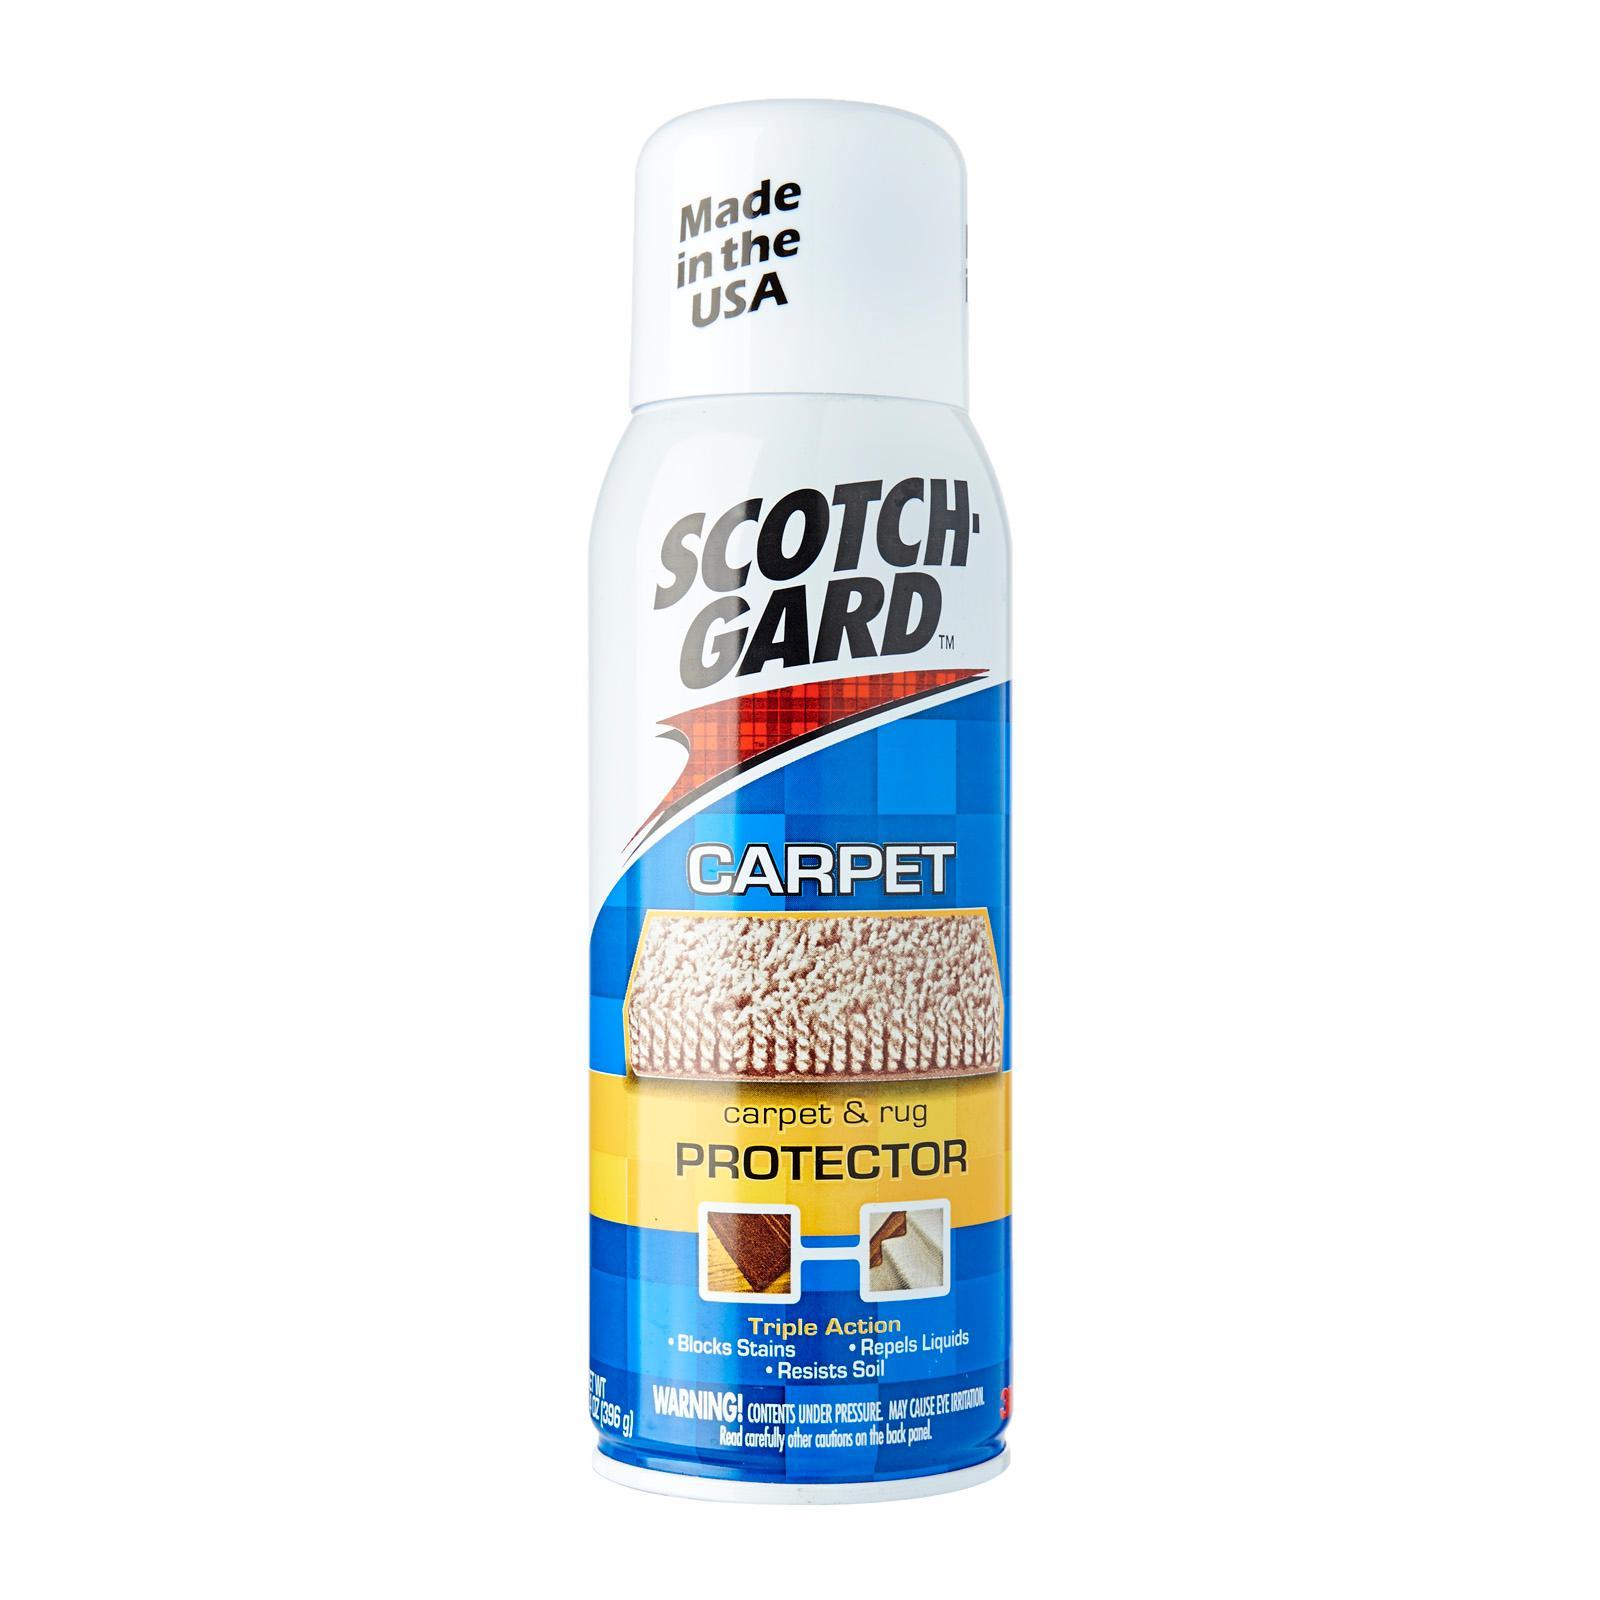 Scotch-Gard Carpet and Rug Protector 396G